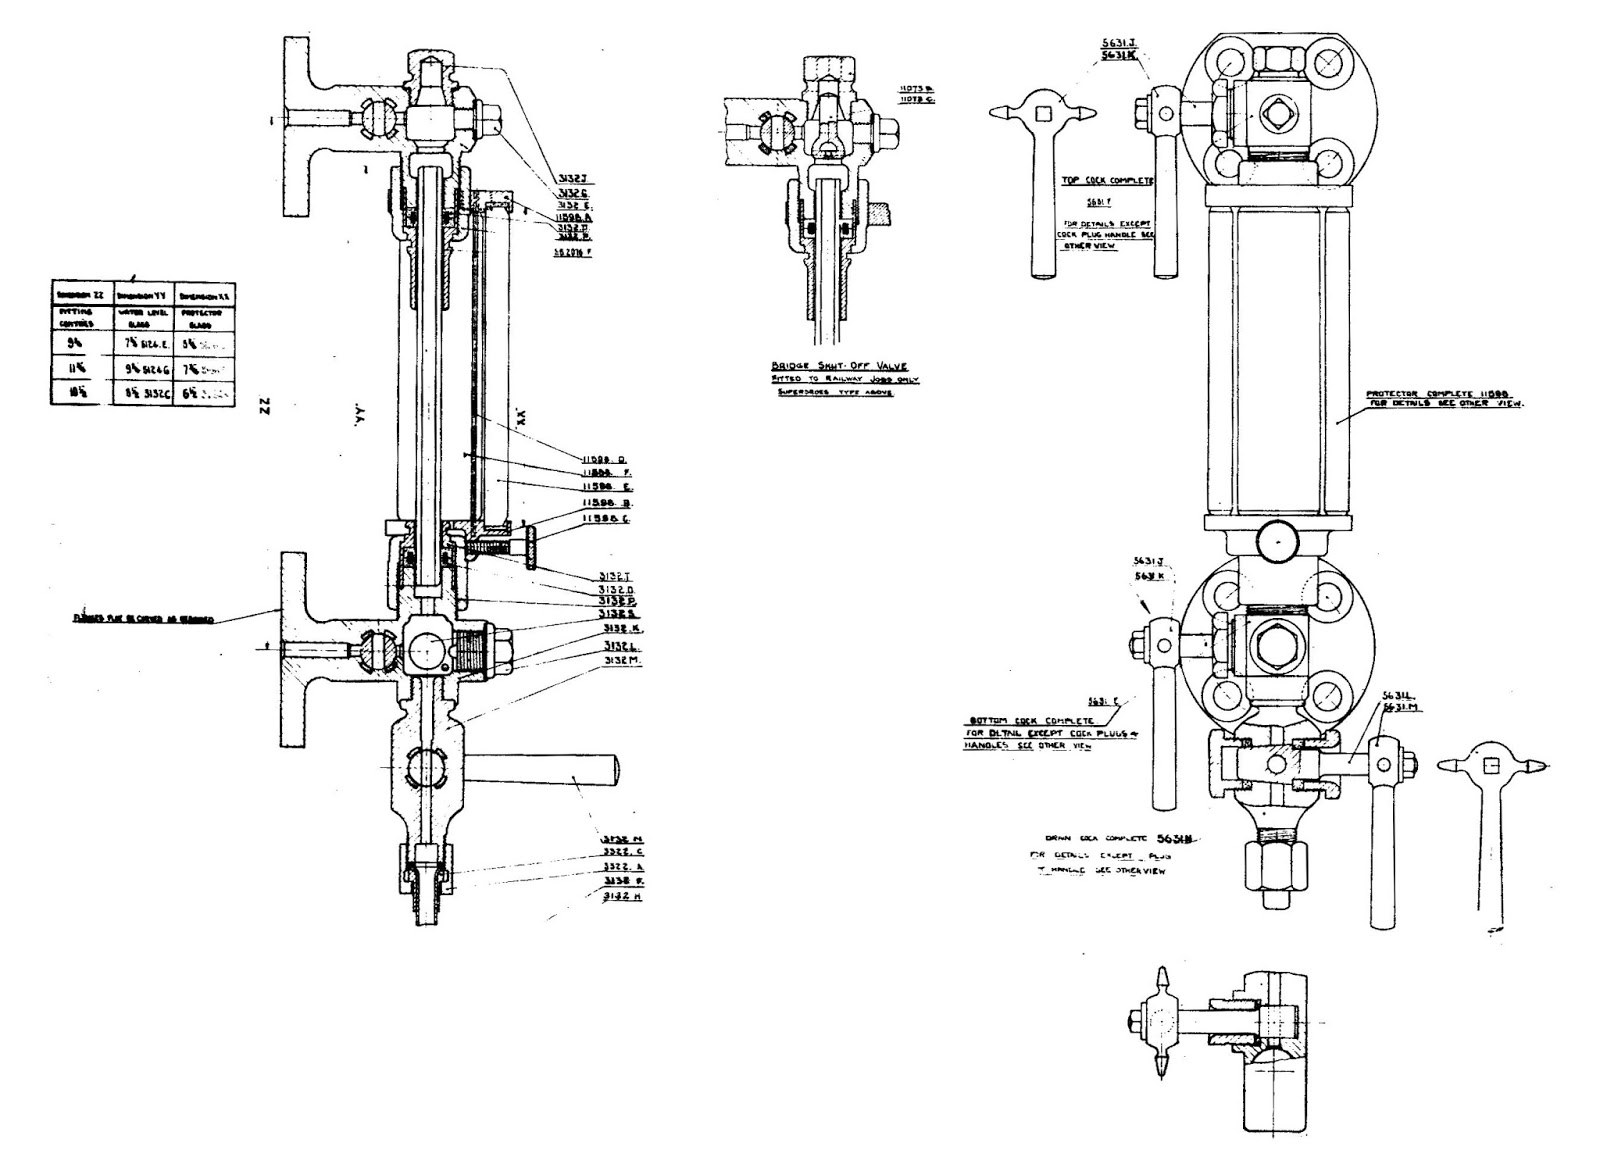 American Flyer E Unit Repair Today Manual Guide Trends Sample Wiring Diagrams Parts Of A Steam Locomotive Diagram Imageresizertool Com Ac To Dc Conversion